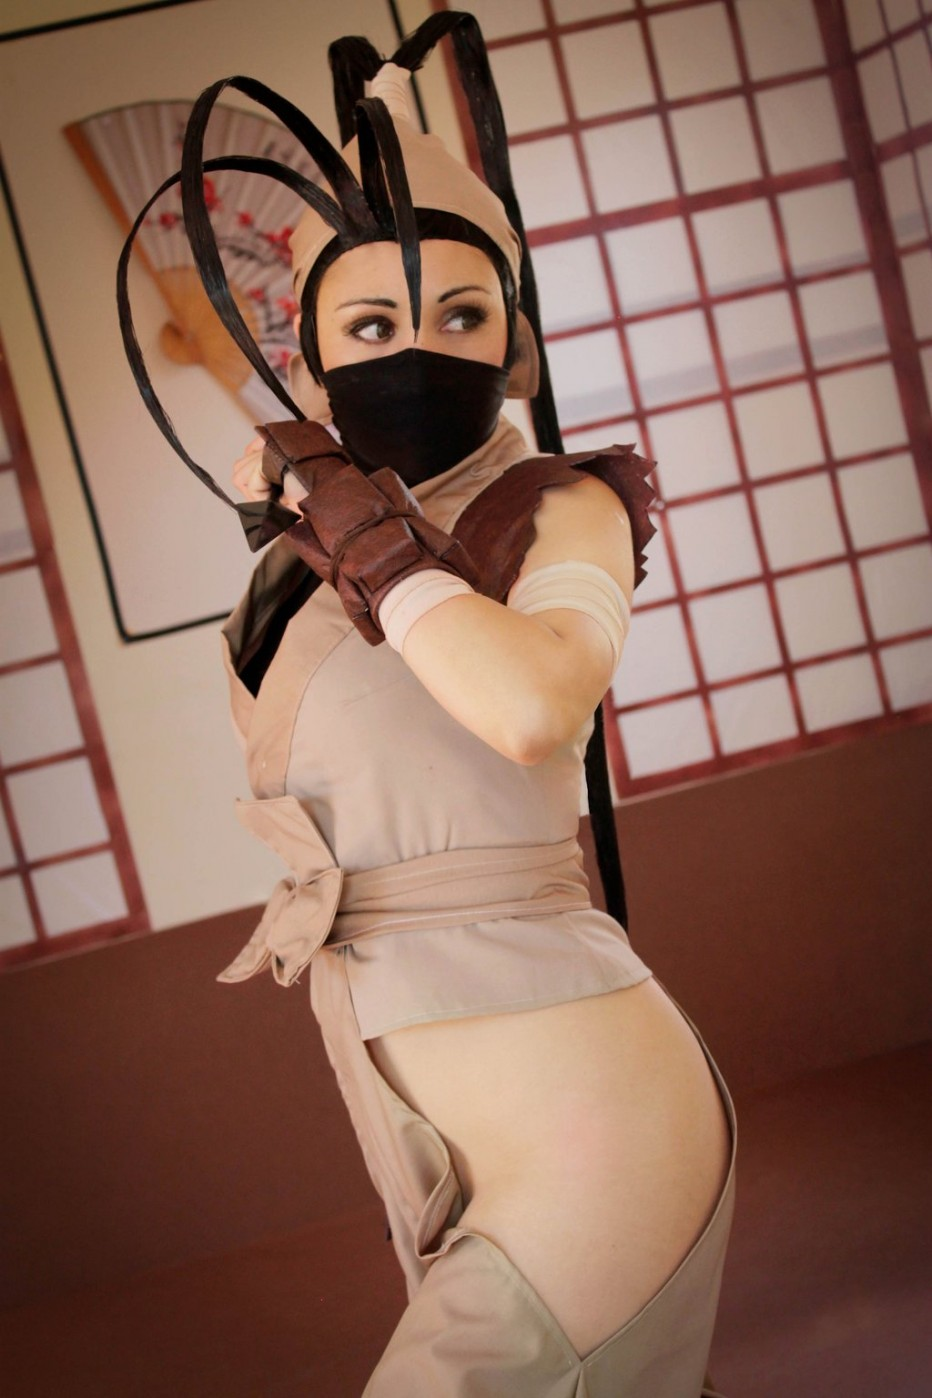 Street-Fighter-Ibuki-Cosplay-1.jpg